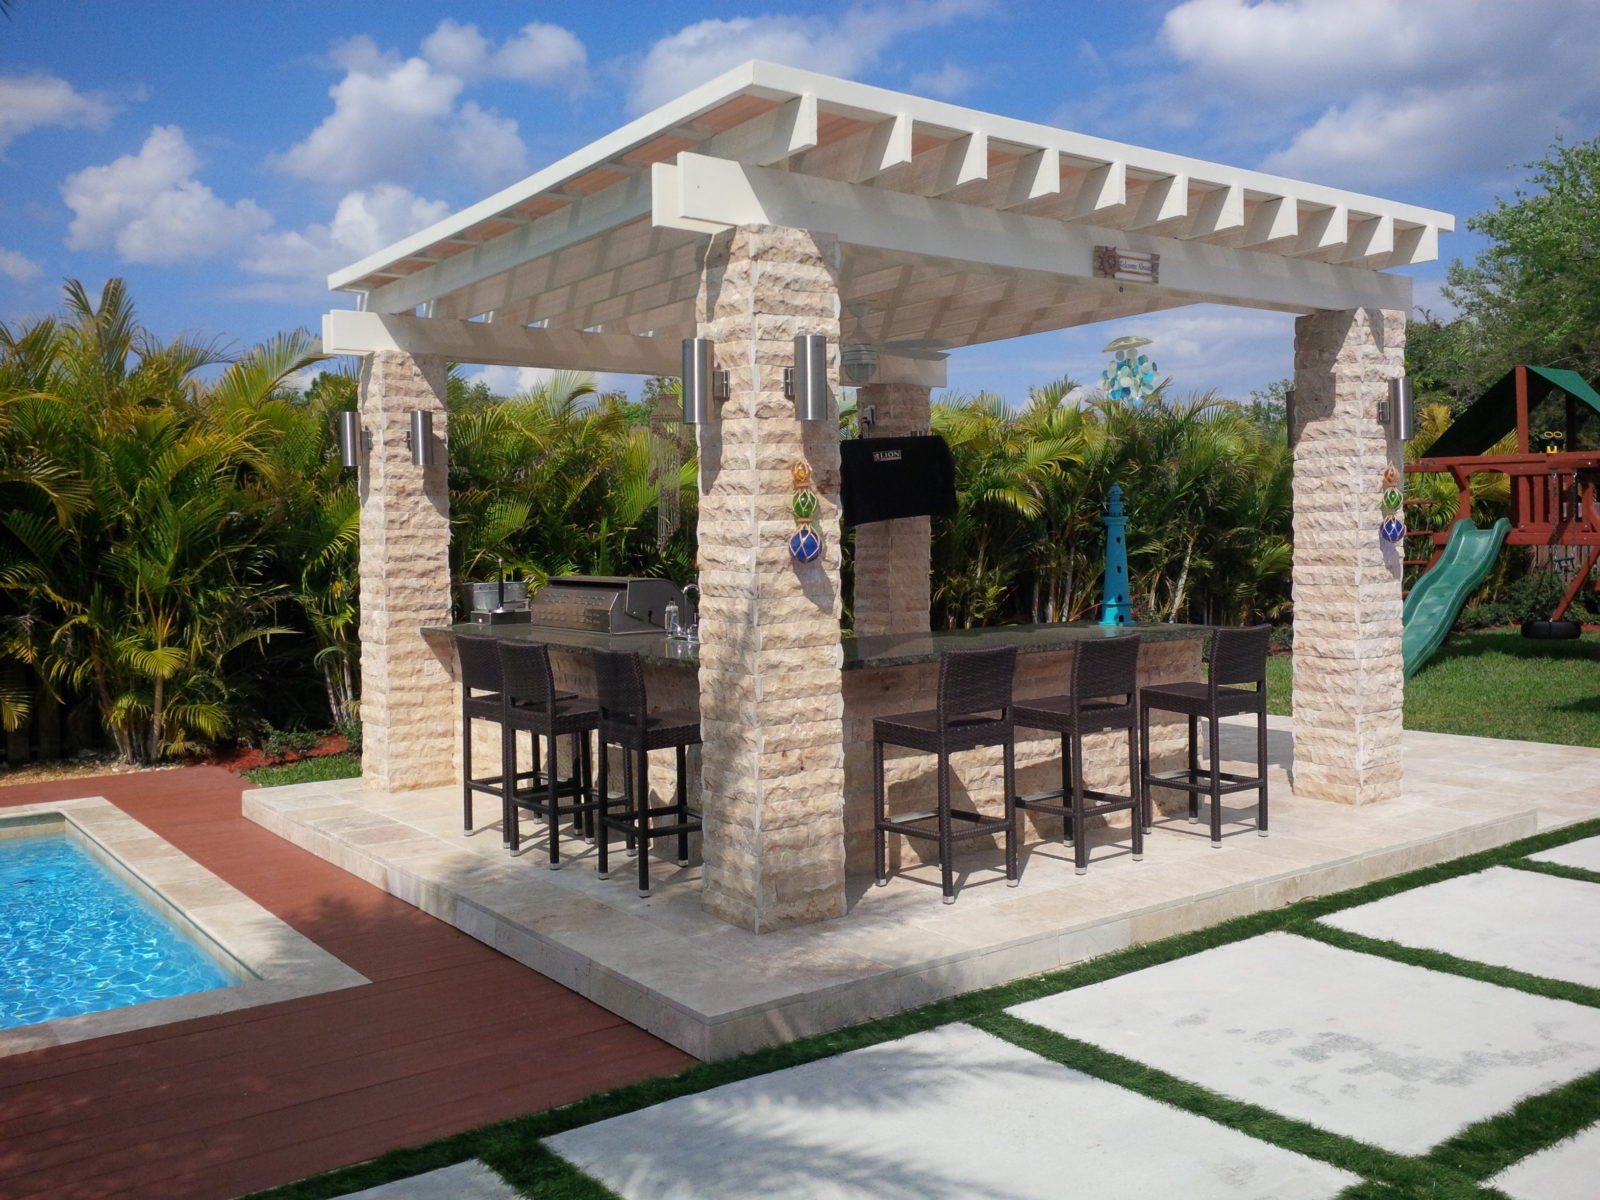 Outdoor Patio Design @ Miami, FL